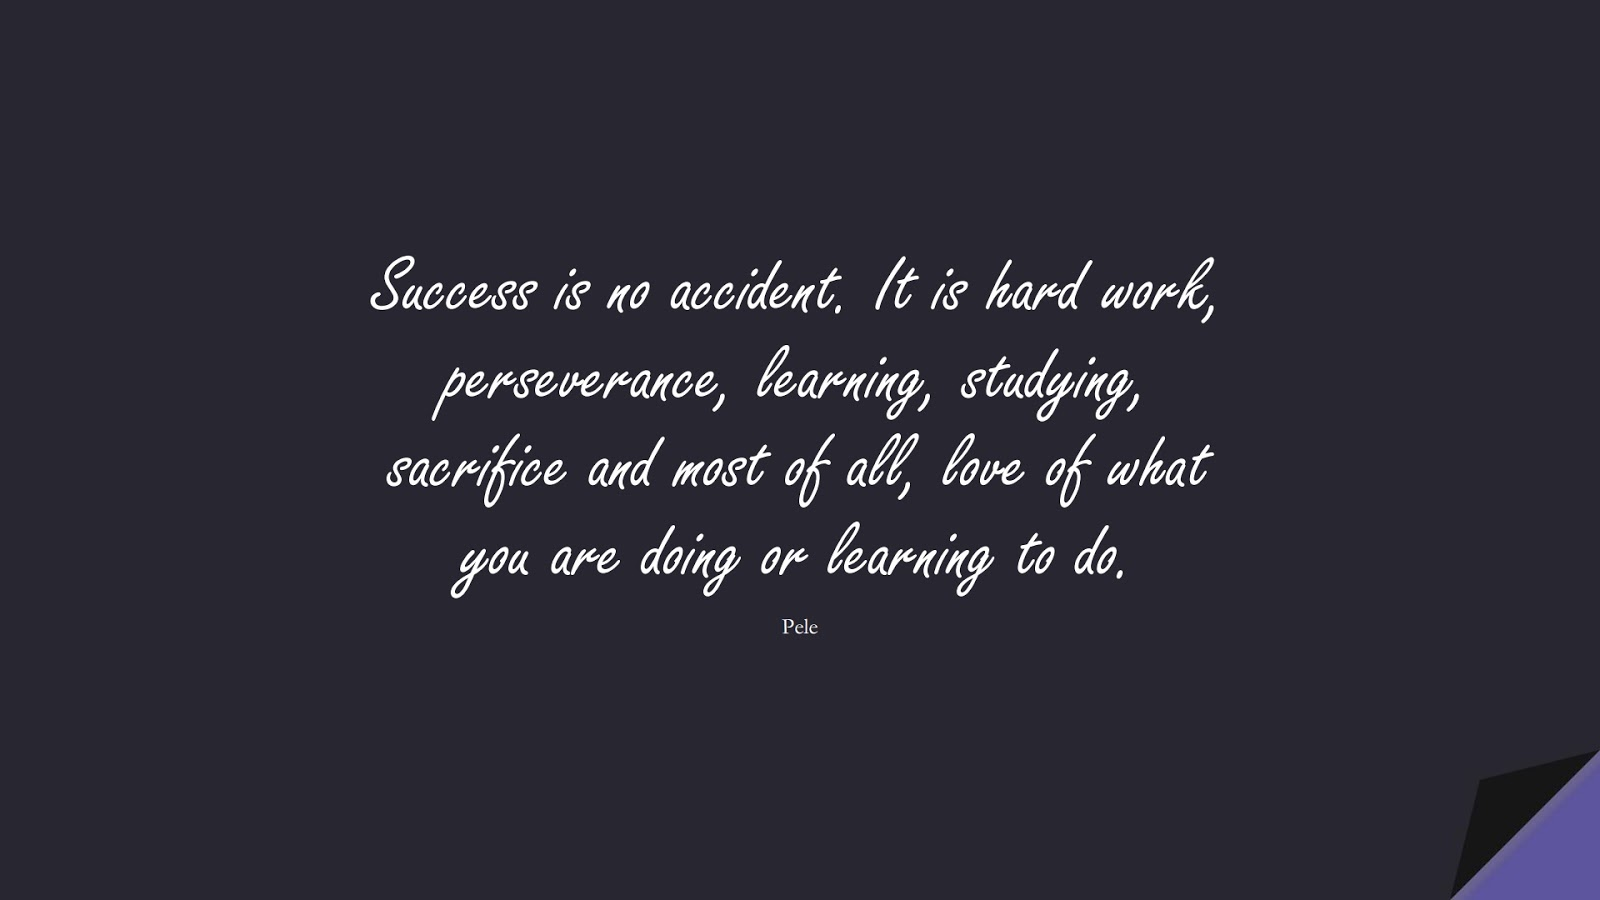 Success is no accident. It is hard work, perseverance, learning, studying, sacrifice and most of all, love of what you are doing or learning to do. (Pele);  #PerseveranceQuotes